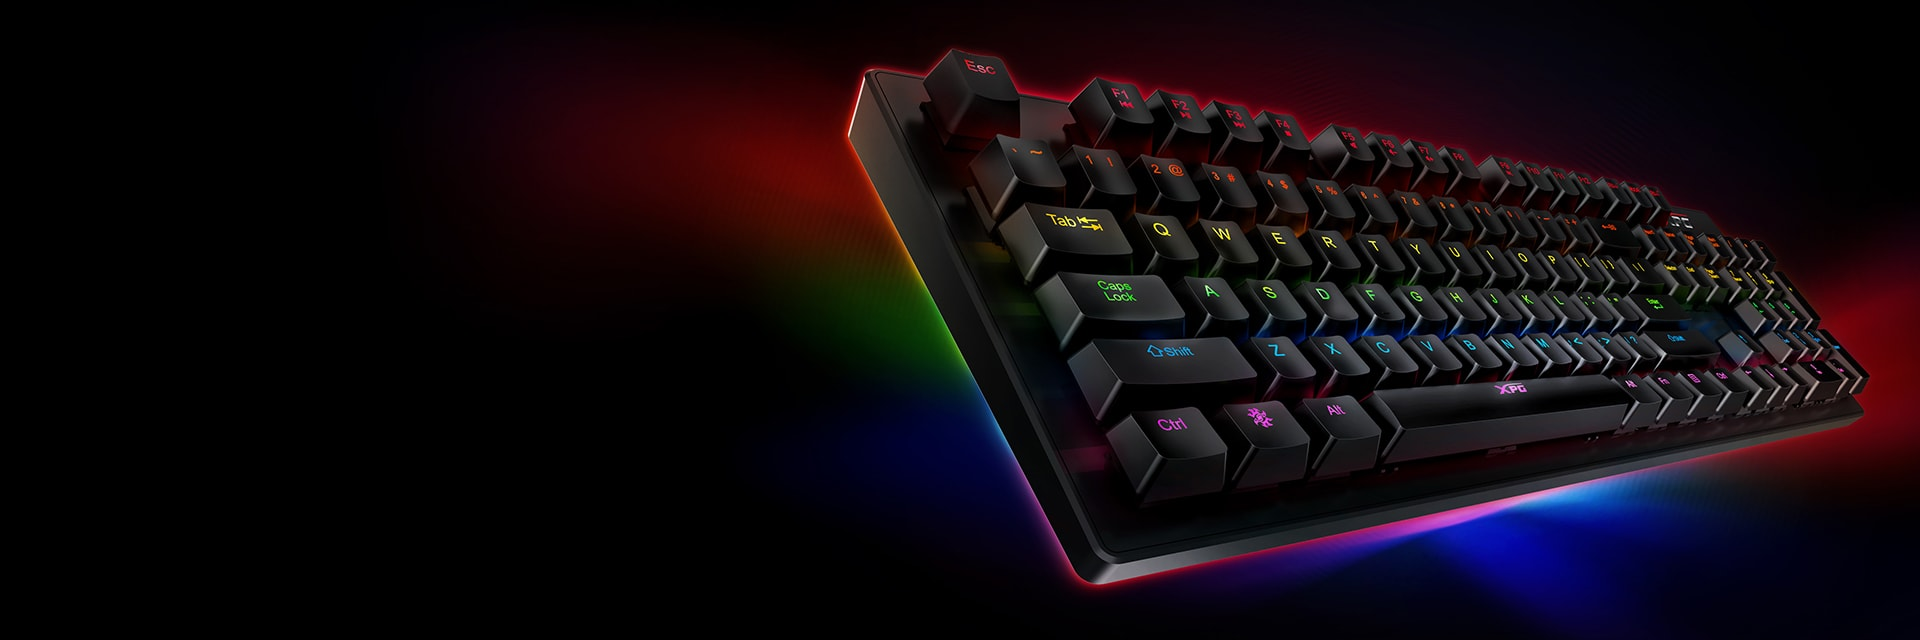 Photo of ADATA XPG lansează tastatura de gaming INFAREX K20